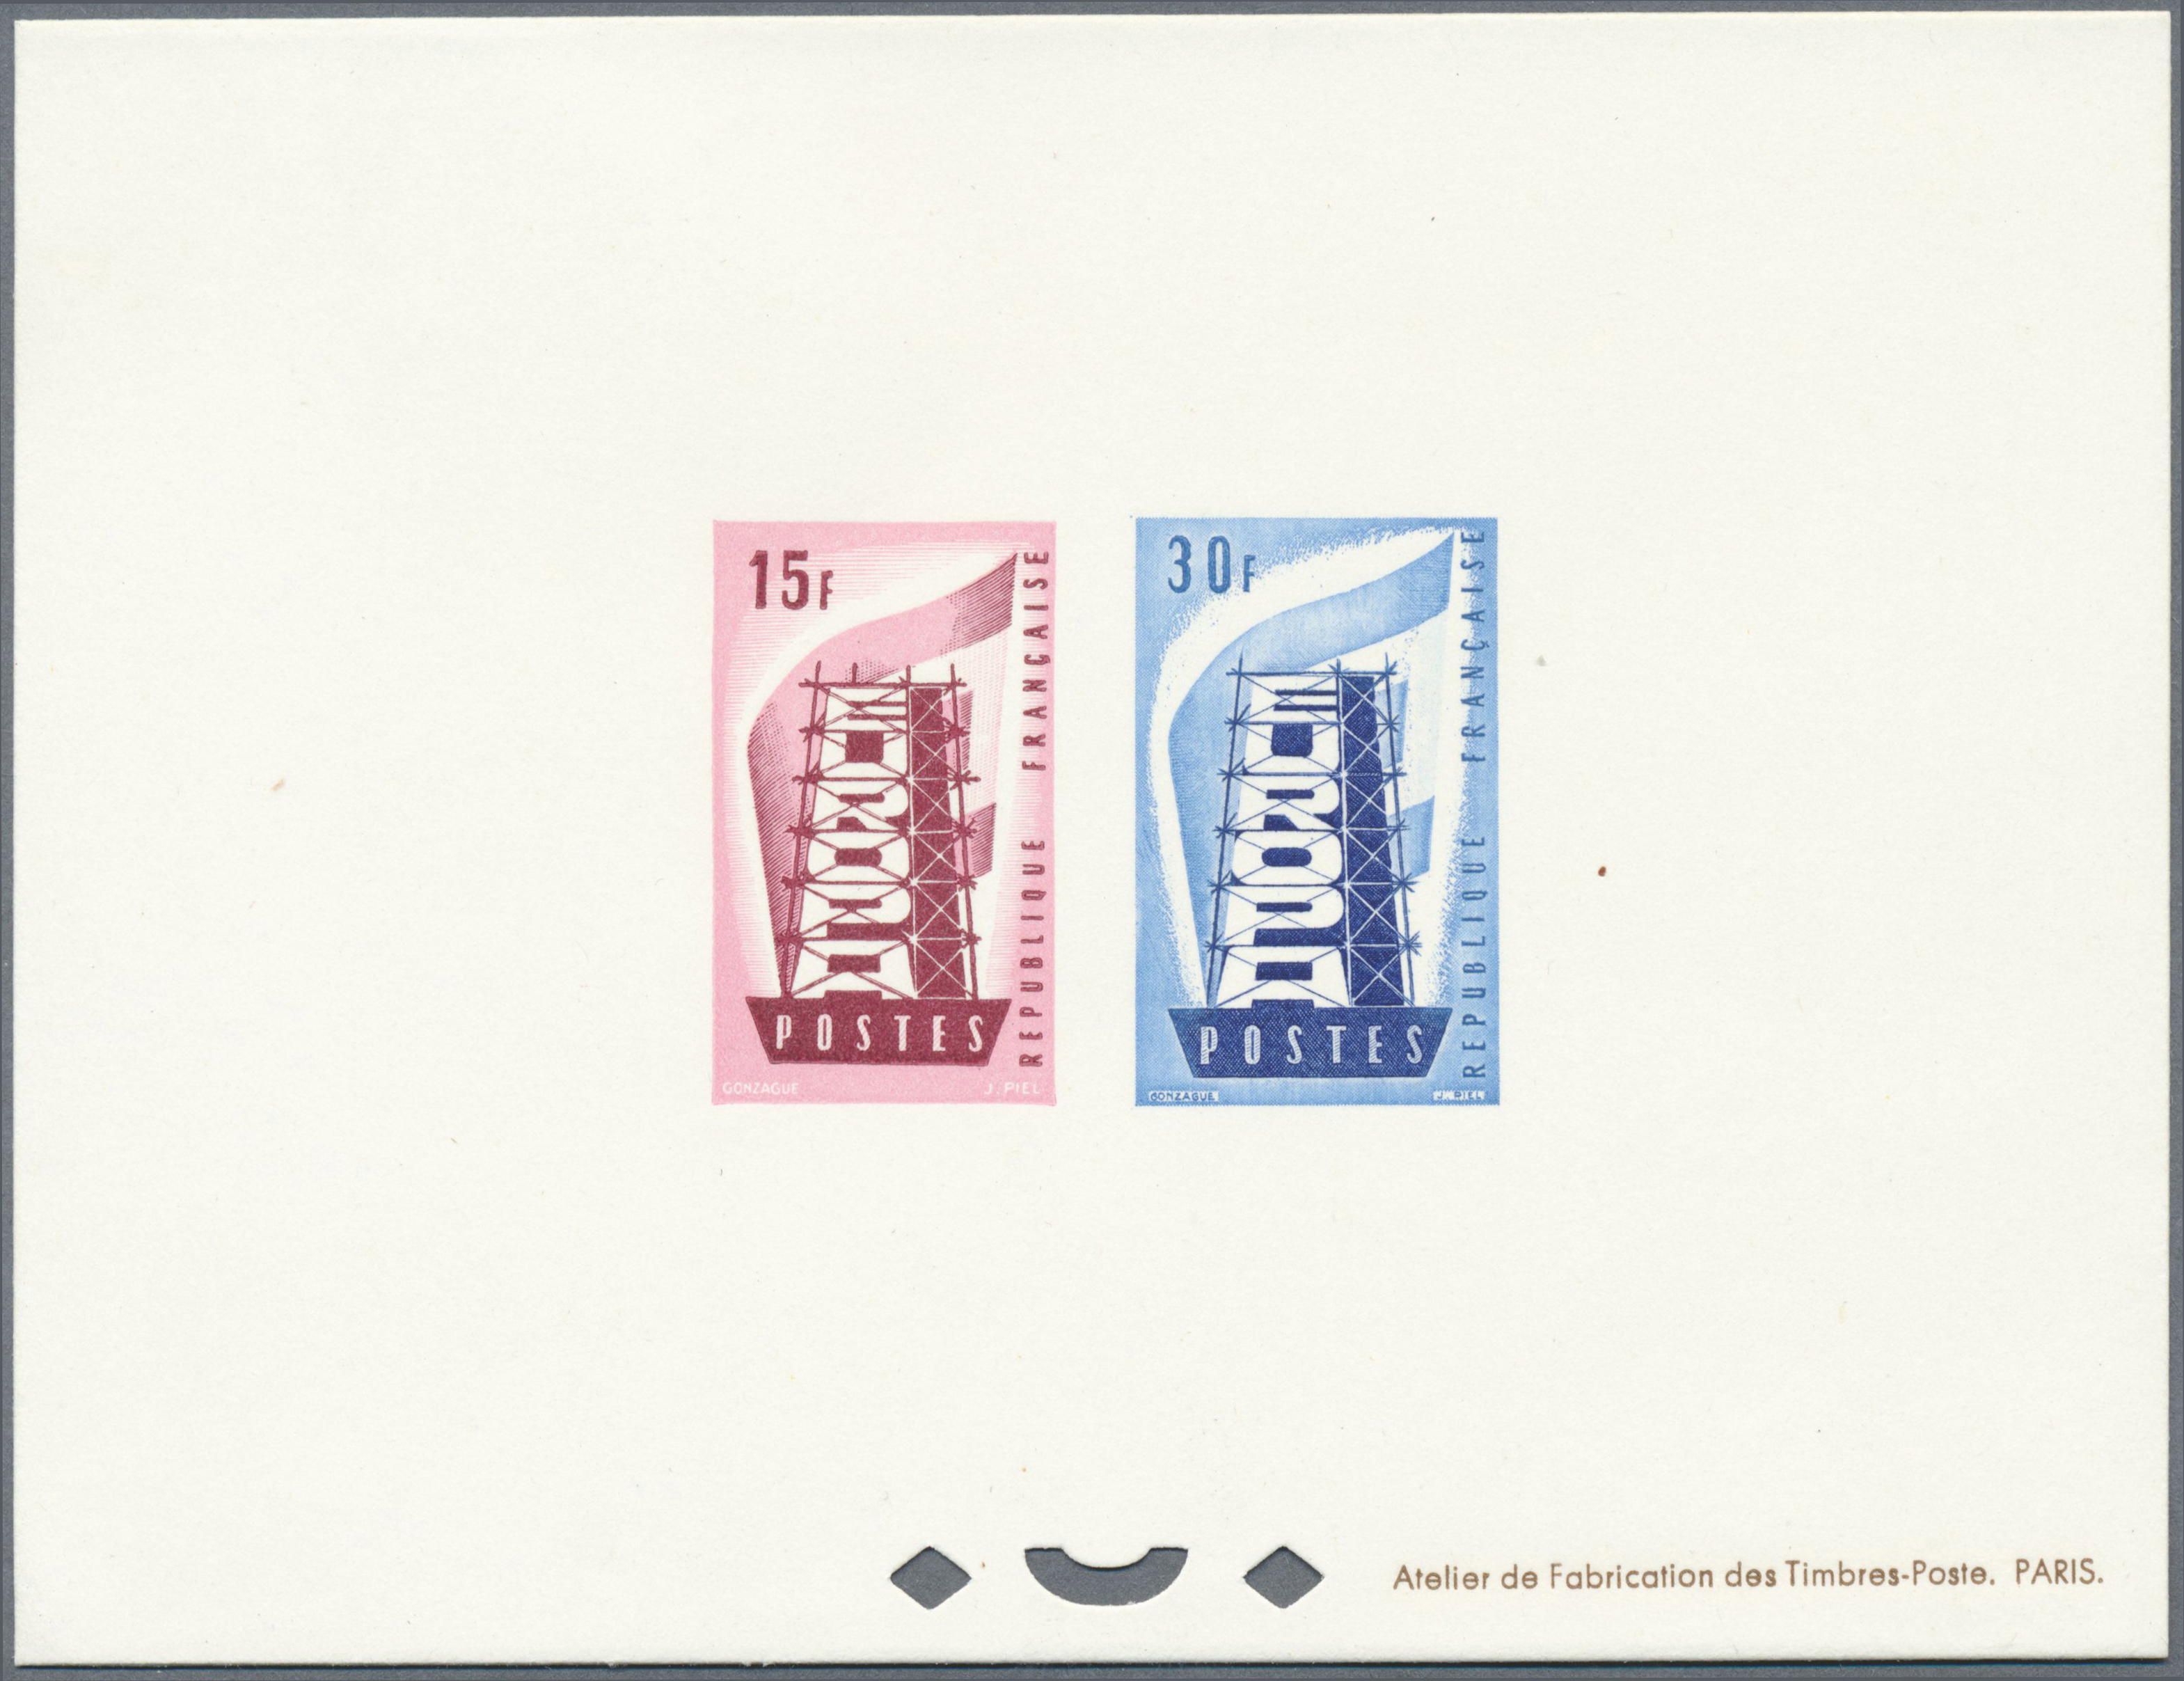 Lot 11137 - thematik: europa / europe  -  Auktionshaus Christoph Gärtner GmbH & Co. KG Single lots Philately Overseas & Europe. Auction #39 Day 4